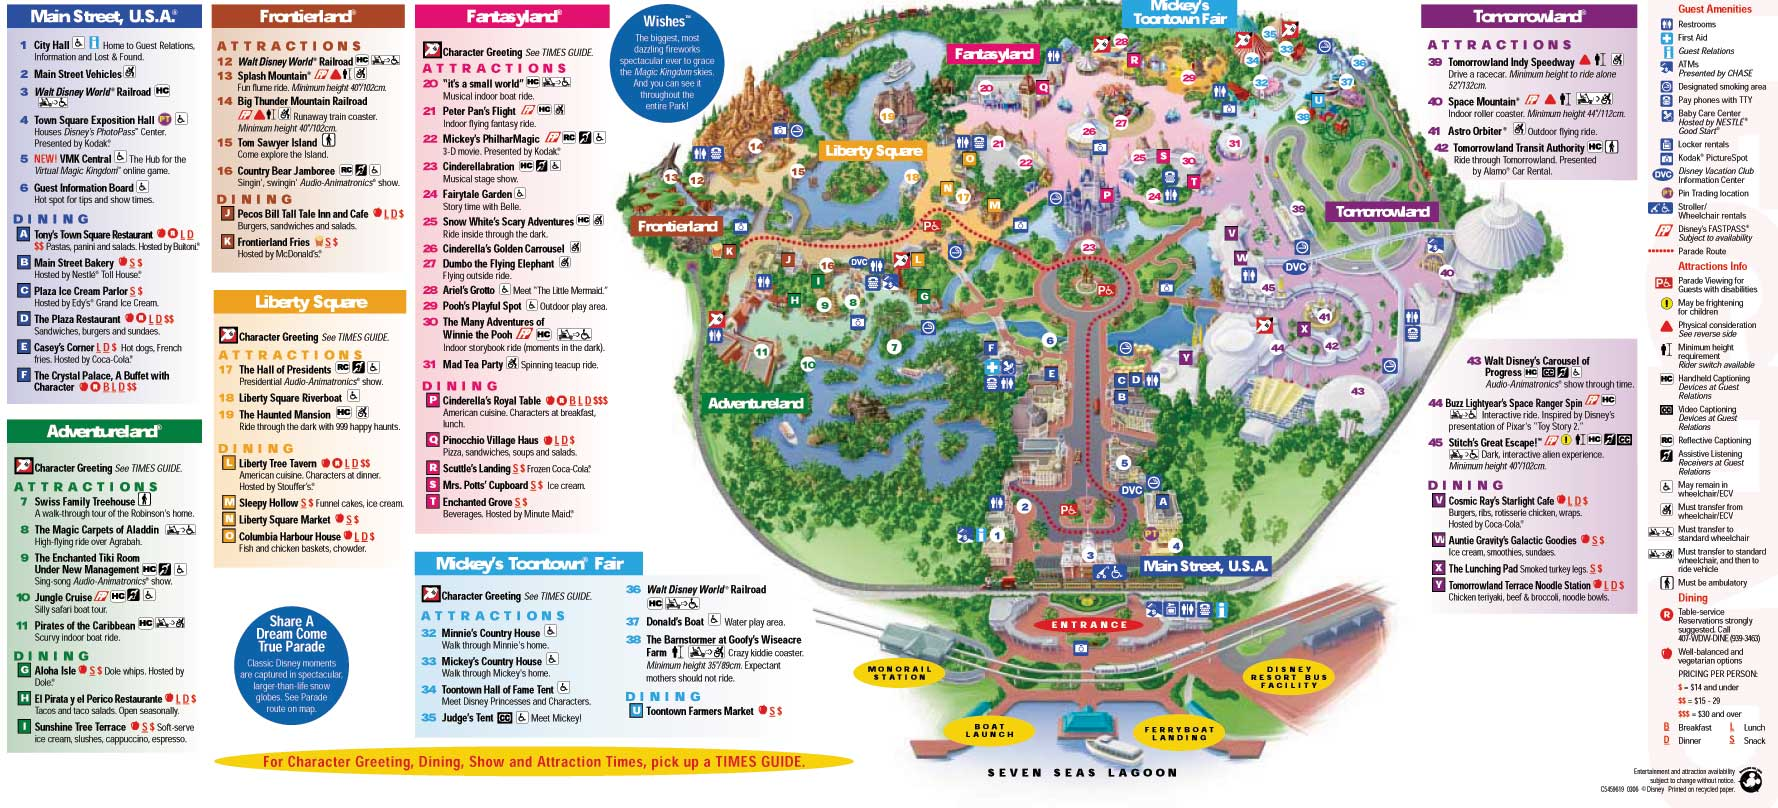 Disney Magic Maps Of Walt Disney World